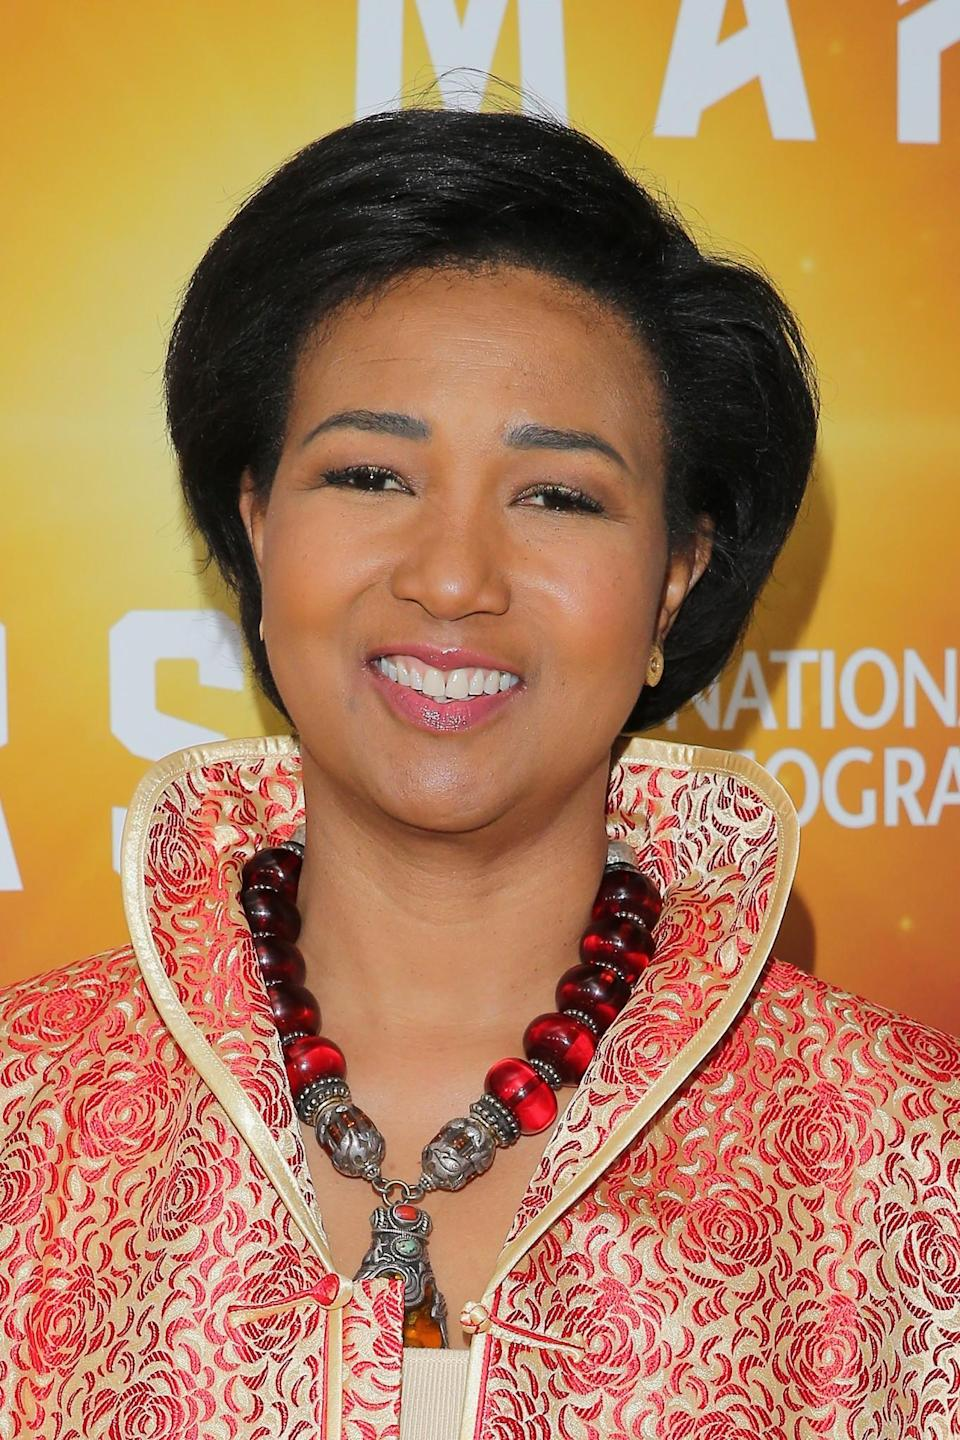 """<p>Mae Jemison was the first African-American woman to travel into space when she boarded the Space Shuttle Endeavour in September 1992. A lifetime love of science led her to a place on NASA'a astronaut program. For five years, she waited for an assignment that would launch her into orbit. When it finally happened, Mae said: """"I felt like I belonged right there in space. I realised I would feel comfortable anywhere in the universe."""" <i>[Photo: Getty]</i> </p>"""